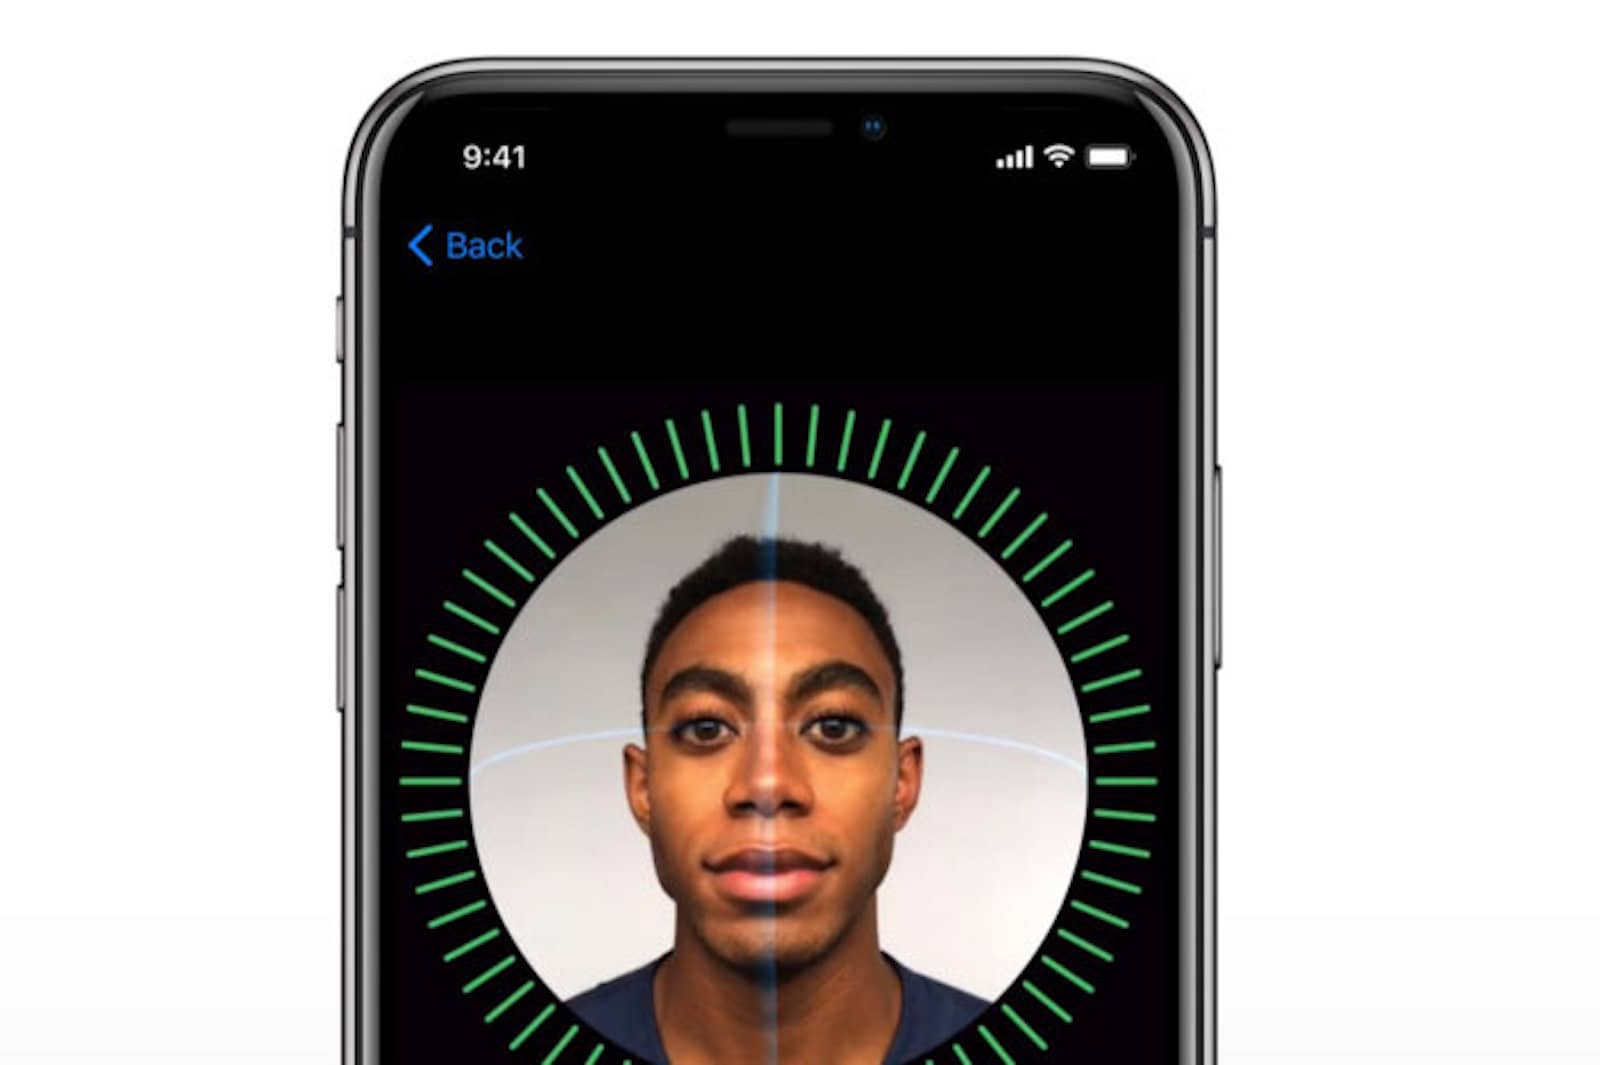 Face ID facial scanning process